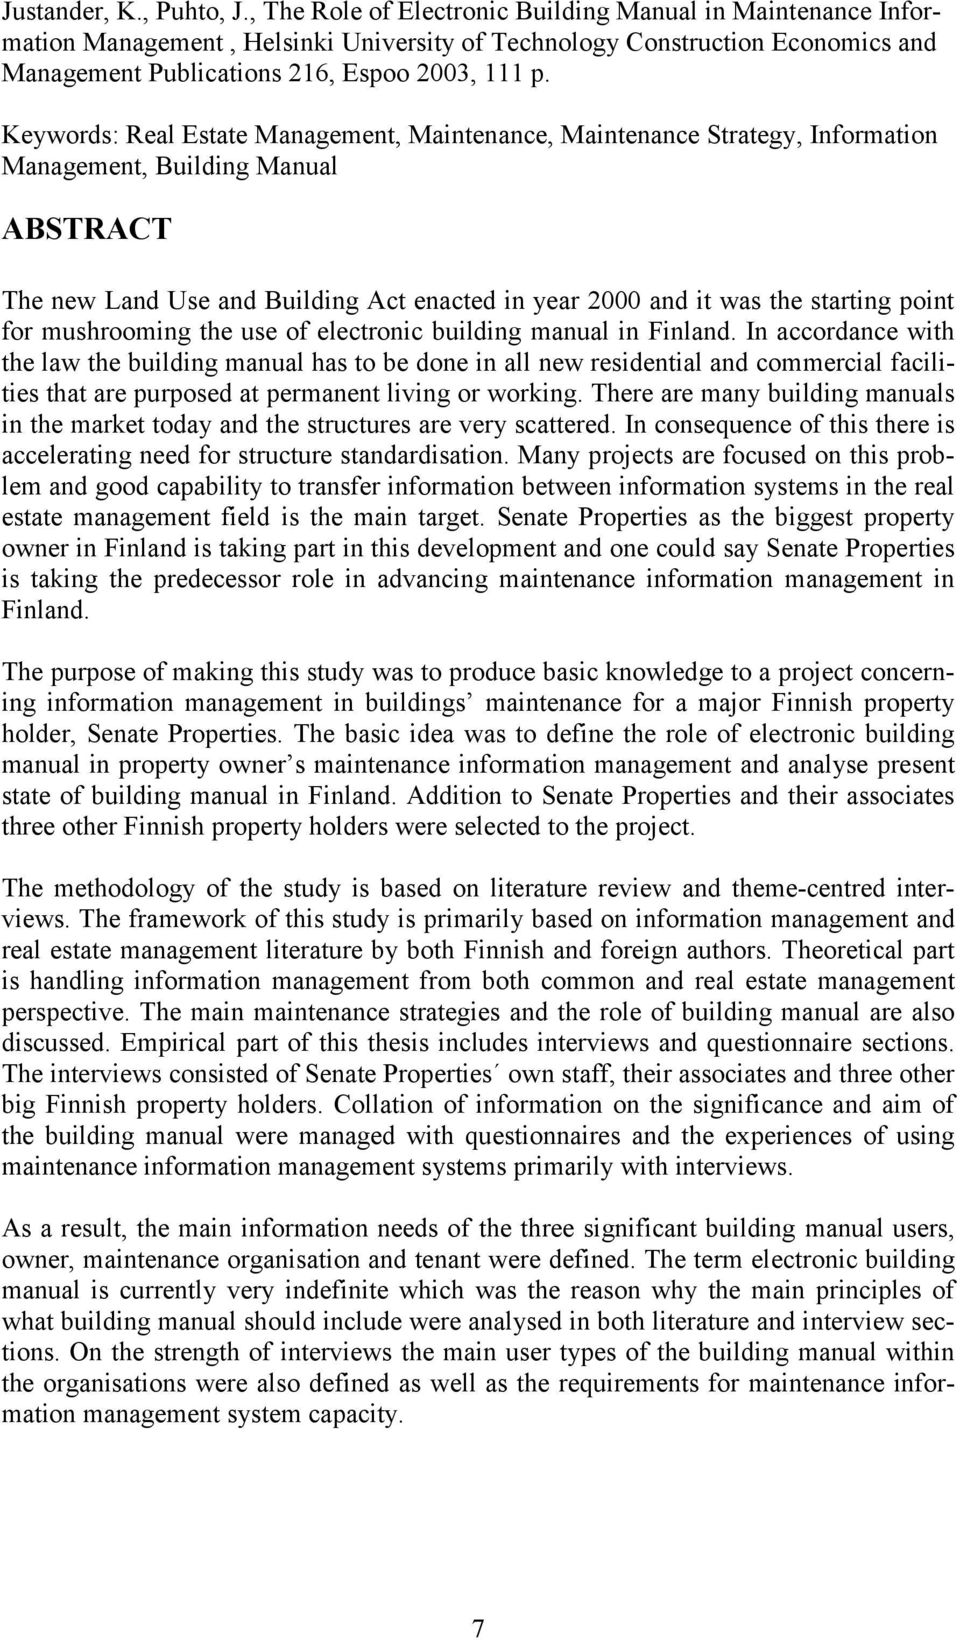 Keywords: Real Estate Management, Maintenance, Maintenance Strategy, Information Management, Building Manual ABSTRACT The new Land Use and Building Act enacted in year 2000 and it was the starting